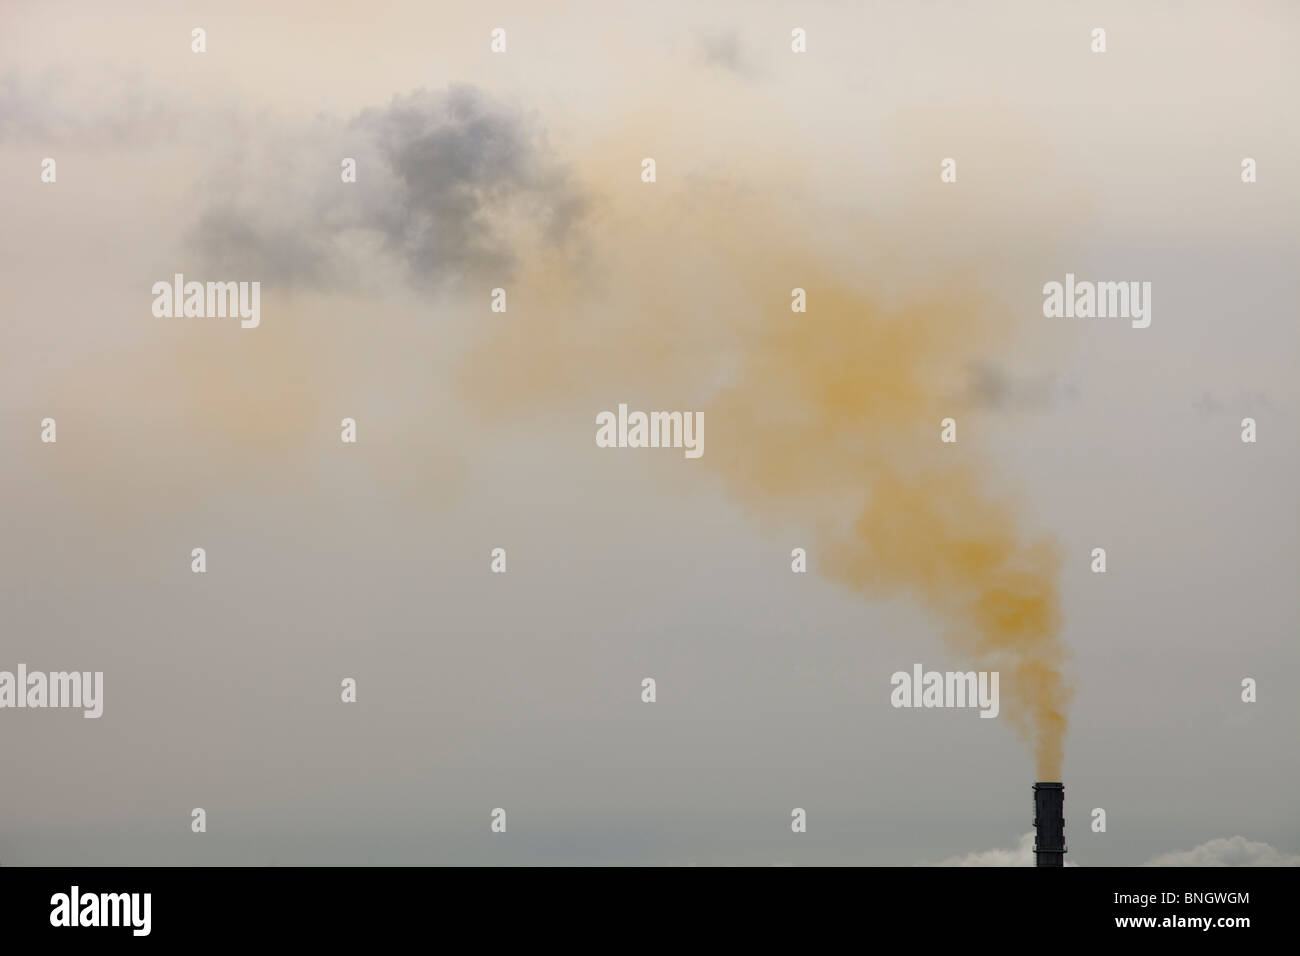 Polluted emissions from a gas fired power plant in Barrow in Furness, Cumbria, UK. - Stock Image